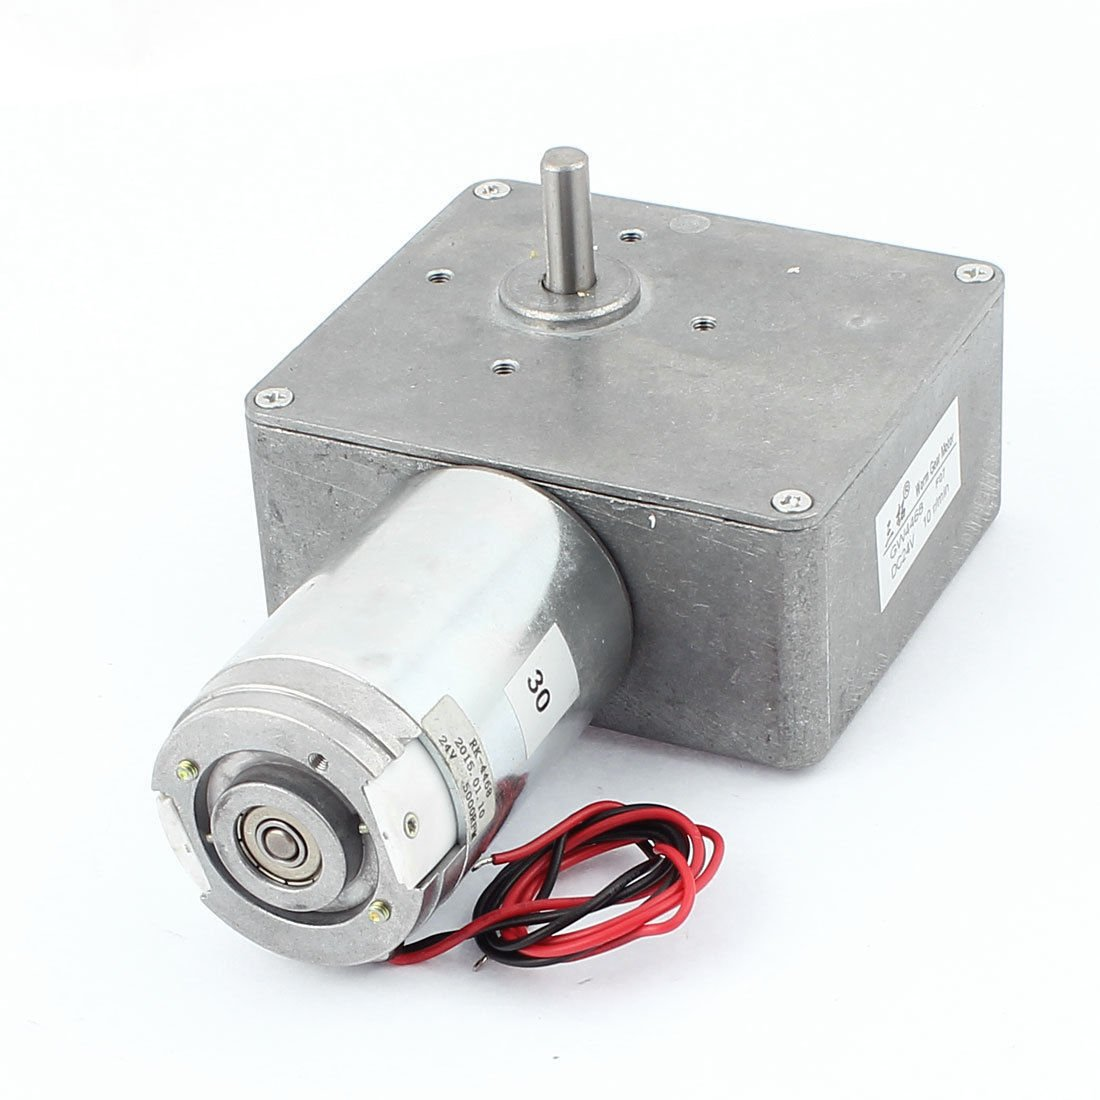 DC 12V 14RPM 2A 40KG.CM 8mm Shaft High Torque Reversible Turbine Worm Gear Motor